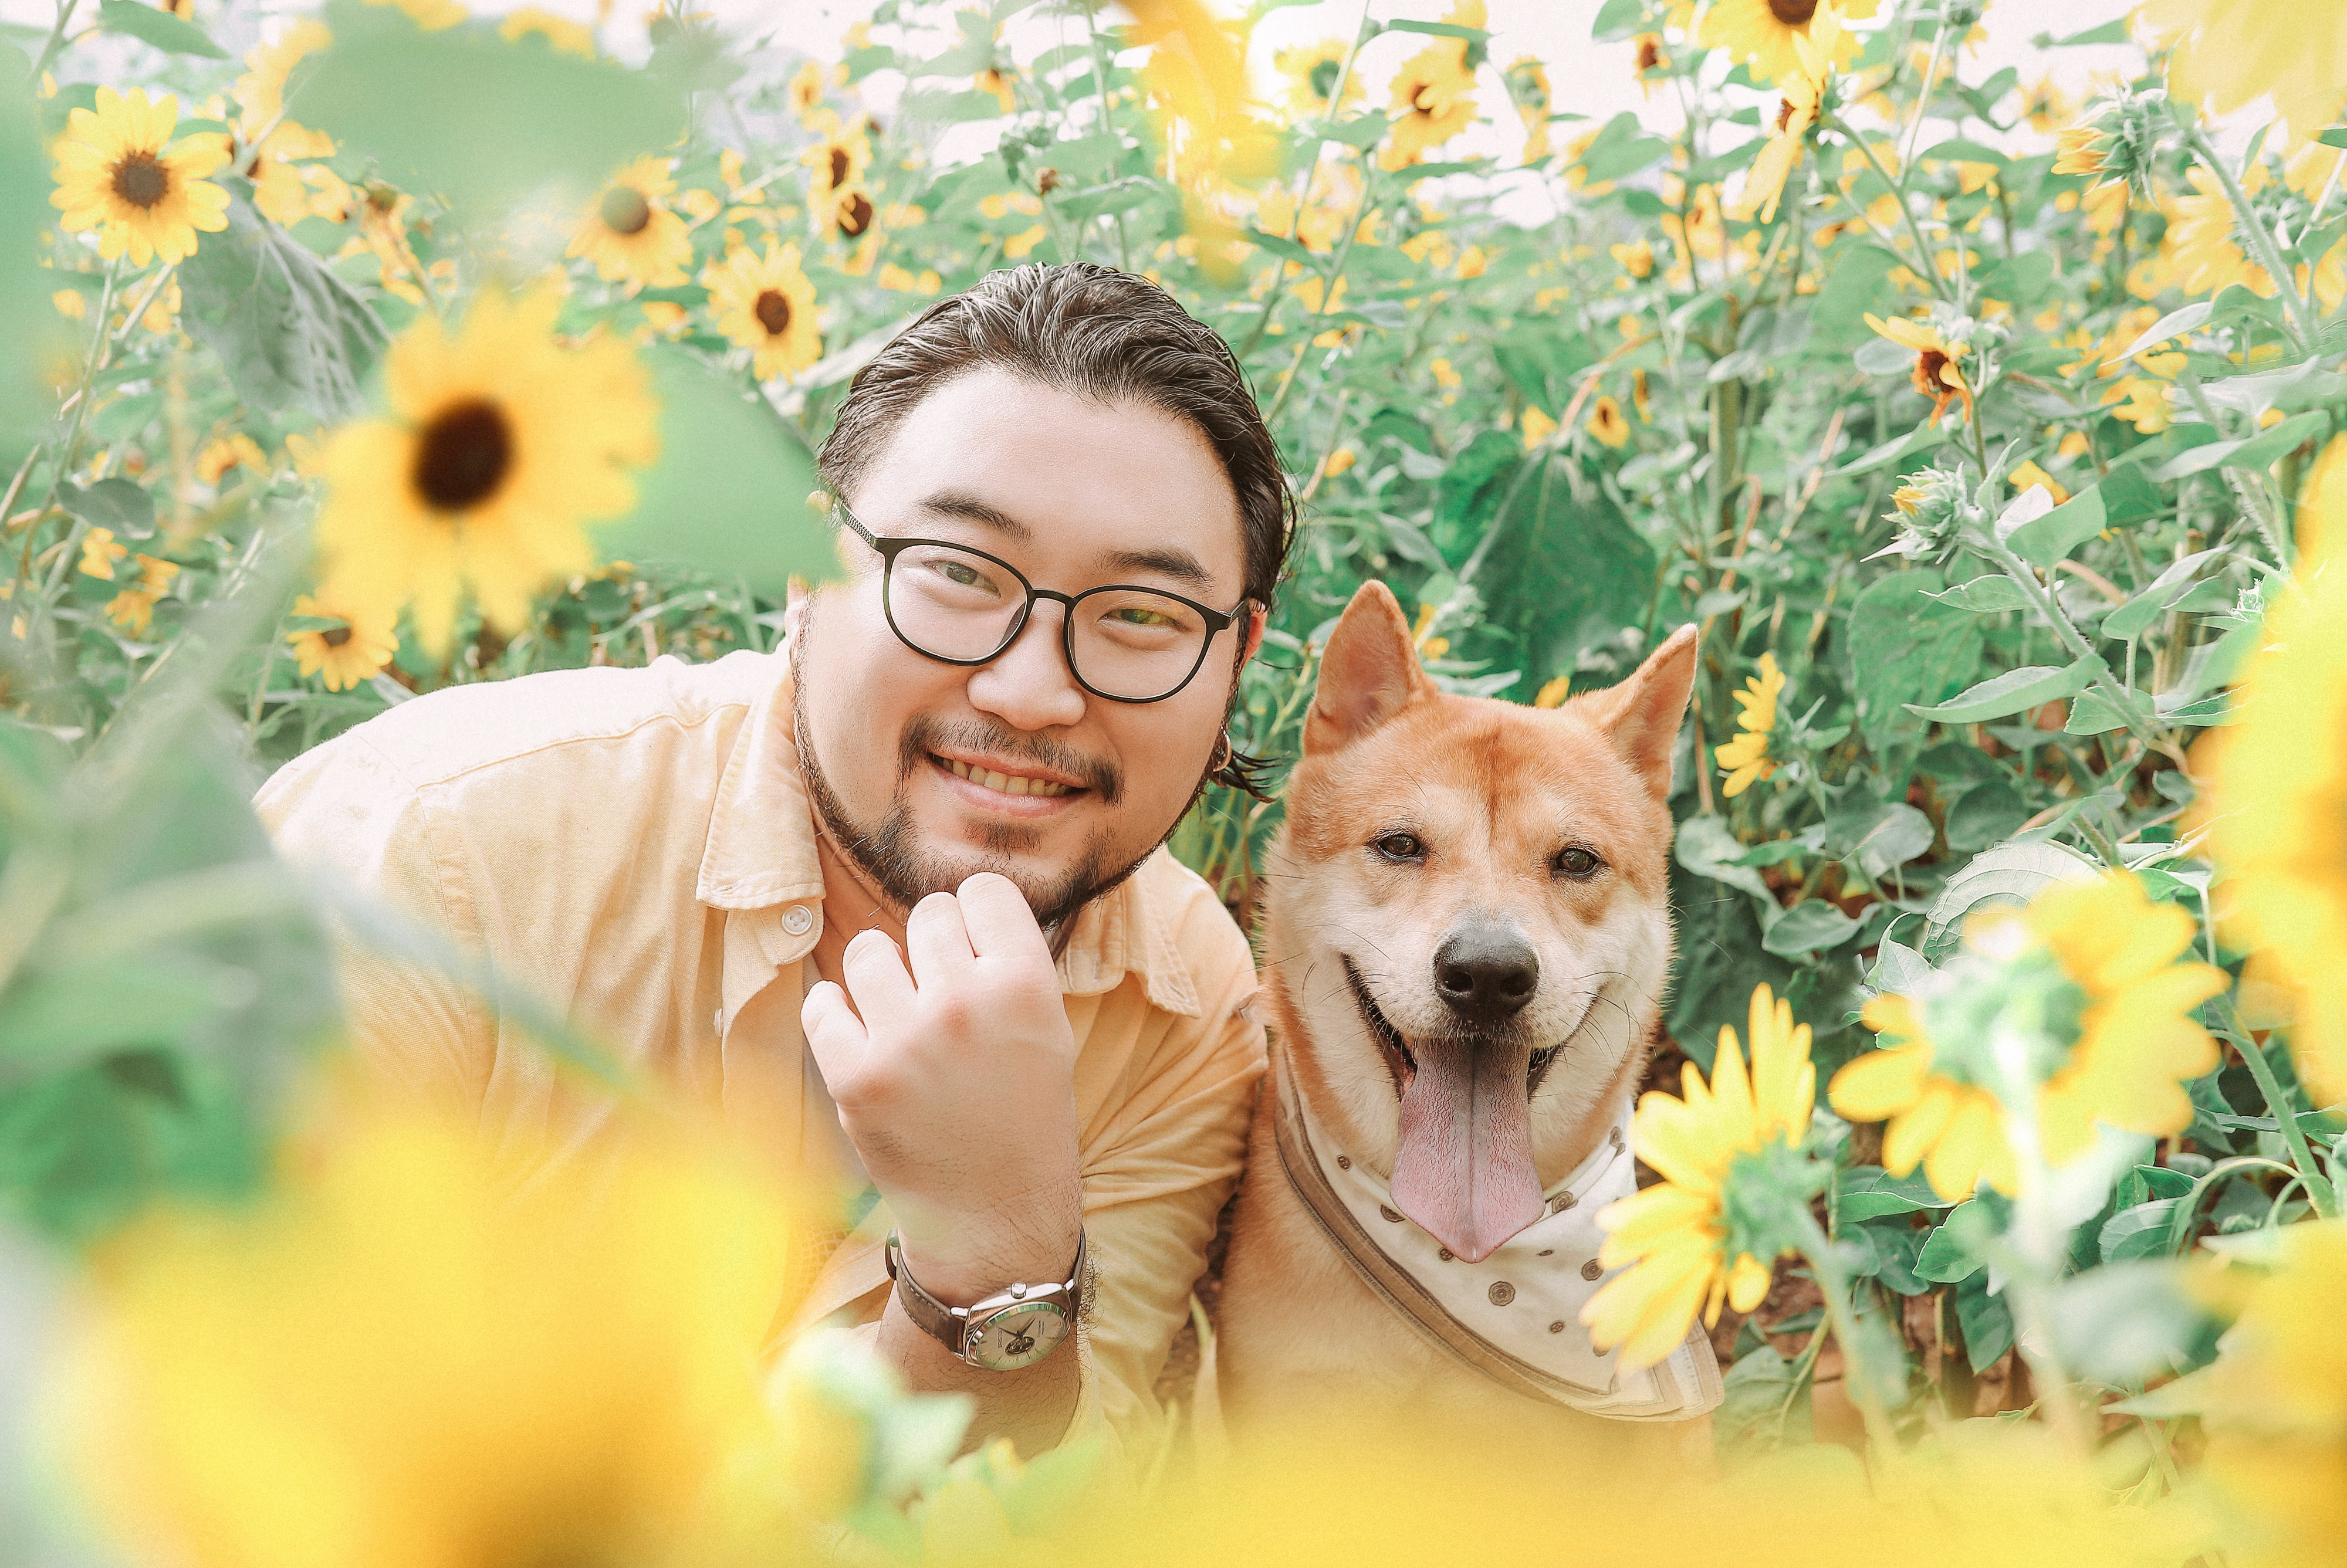 A man poses with his dog in a sunflower patch. Trust is crucial for remote teams.